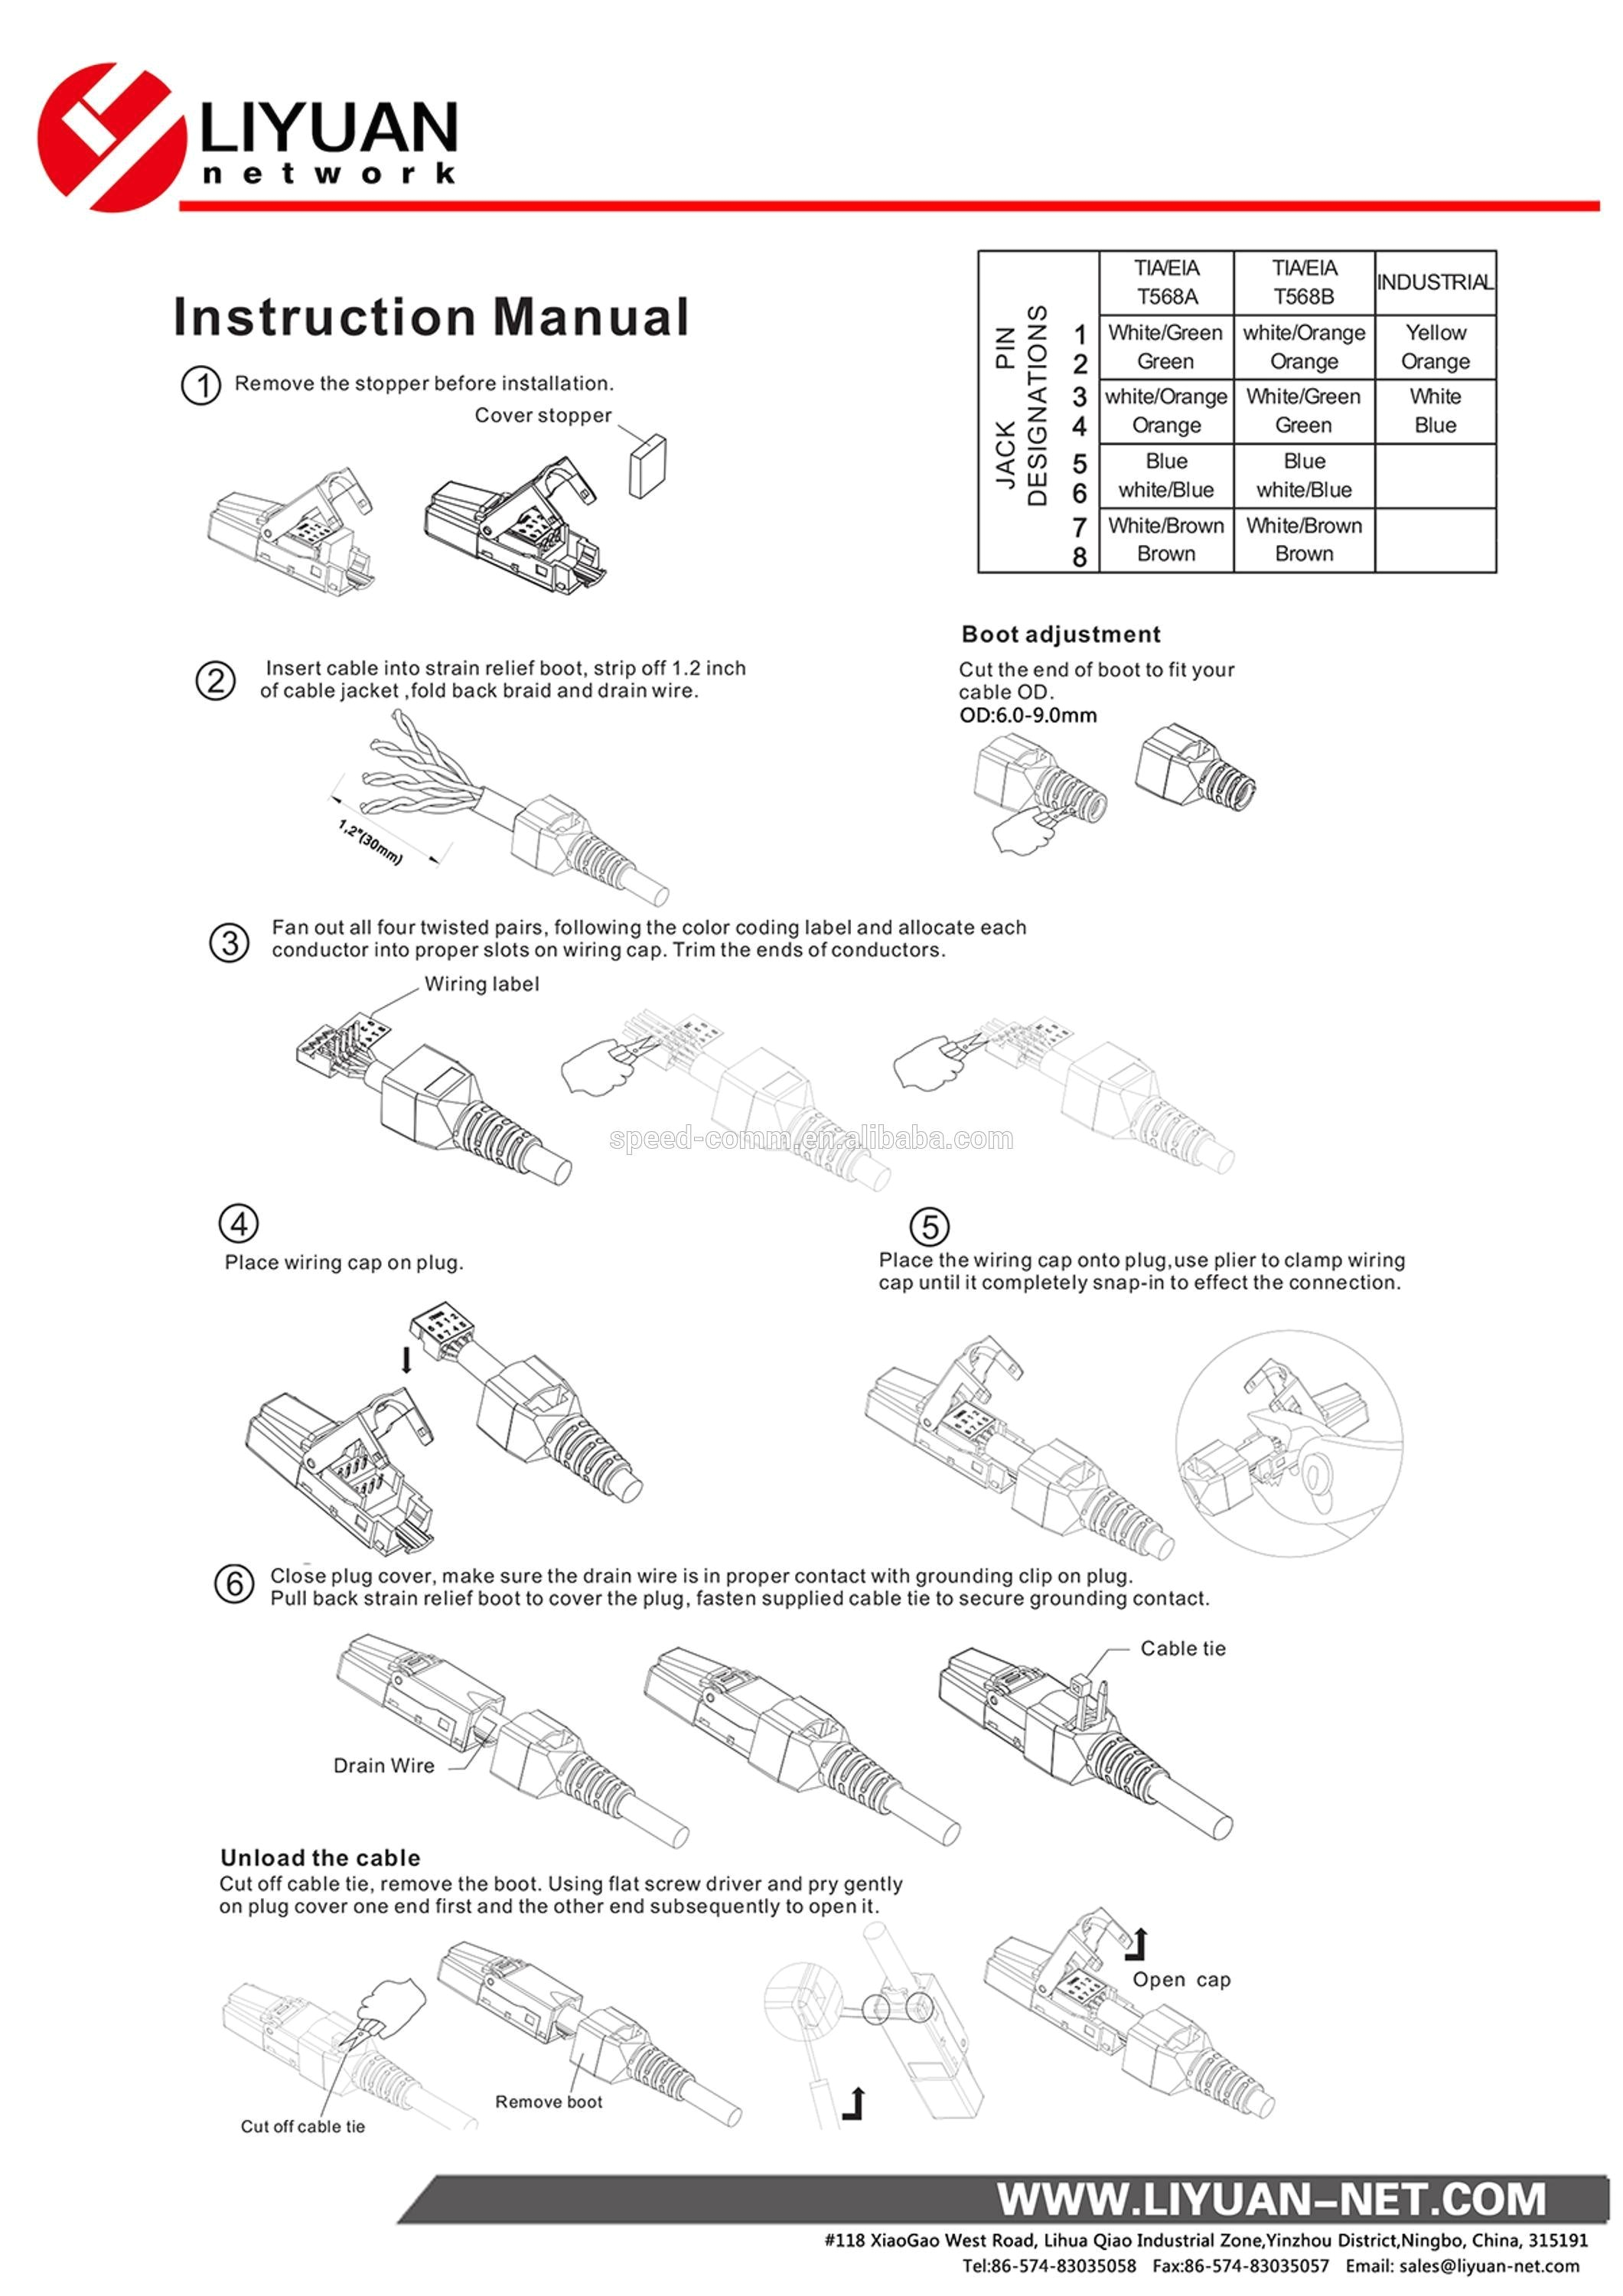 cat 6 wiring diagram rj45 cat 6 wiring diagram rj45 reference wiring diagram for cat5 crossover cable refrence amazing rj45 18i jpg